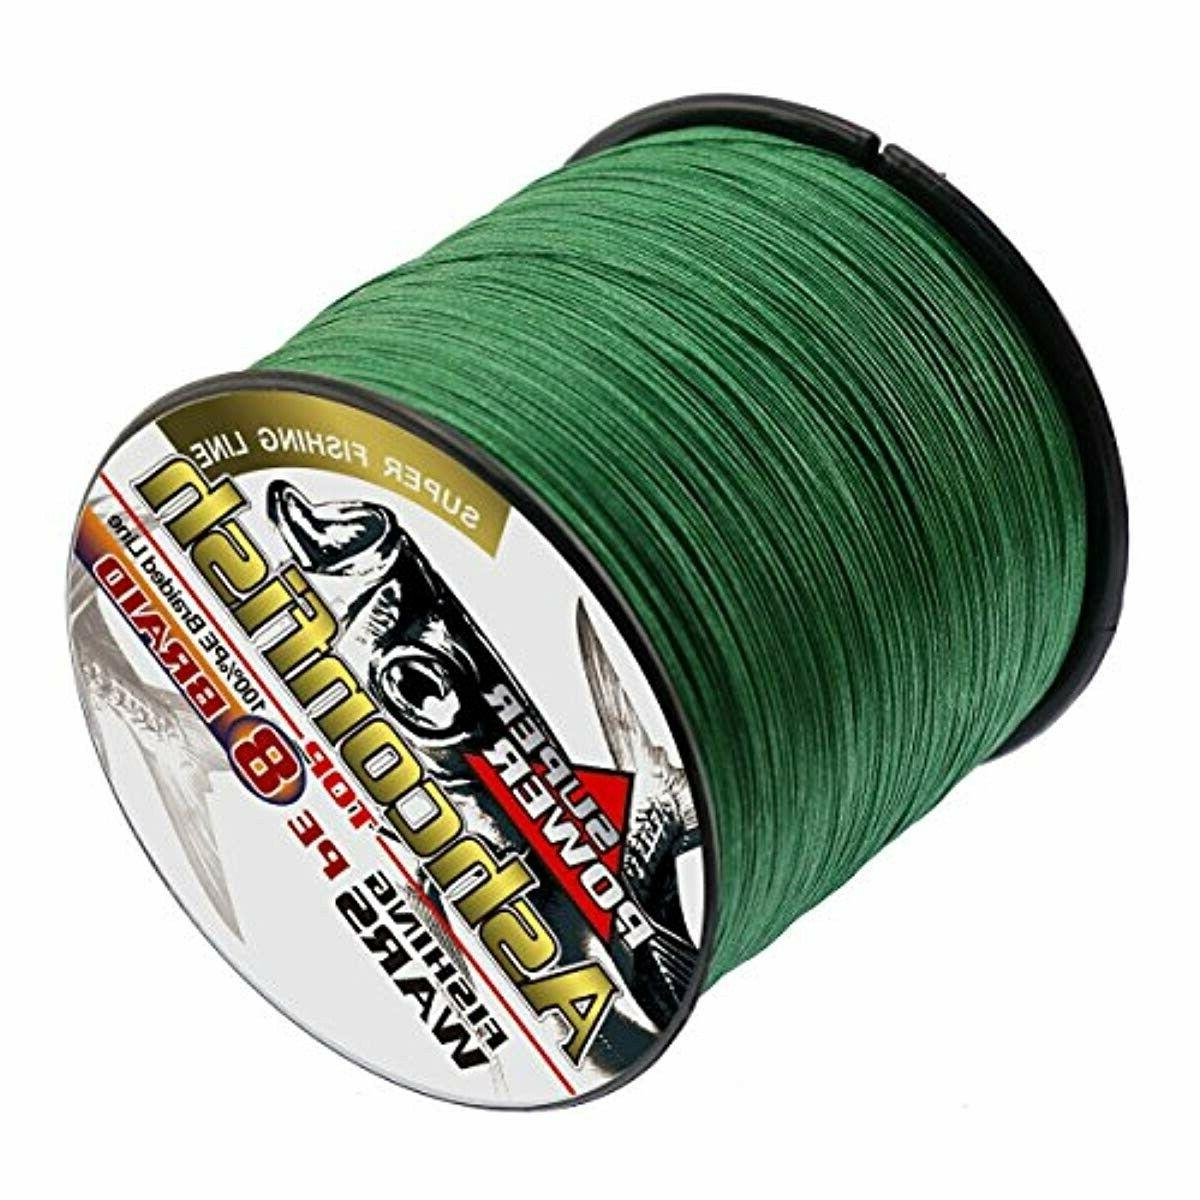 Ashconfish Braided Strands Super Strong Fishing Wire